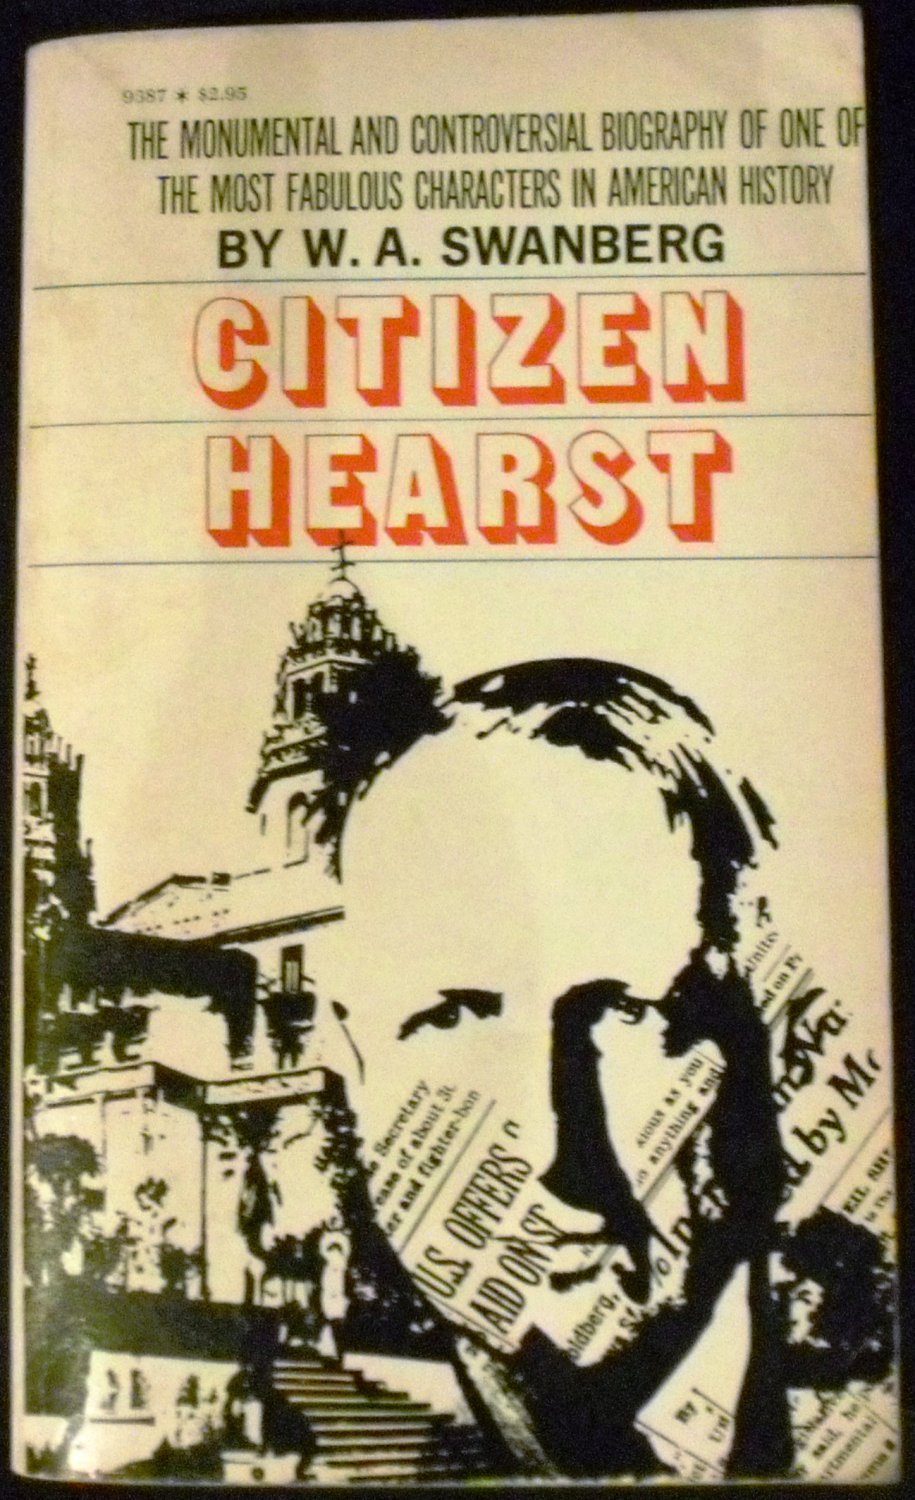 Citizen Hearst: A biography of William Randolph Hearst [Paperback 1971] by  W. A. Swanberg